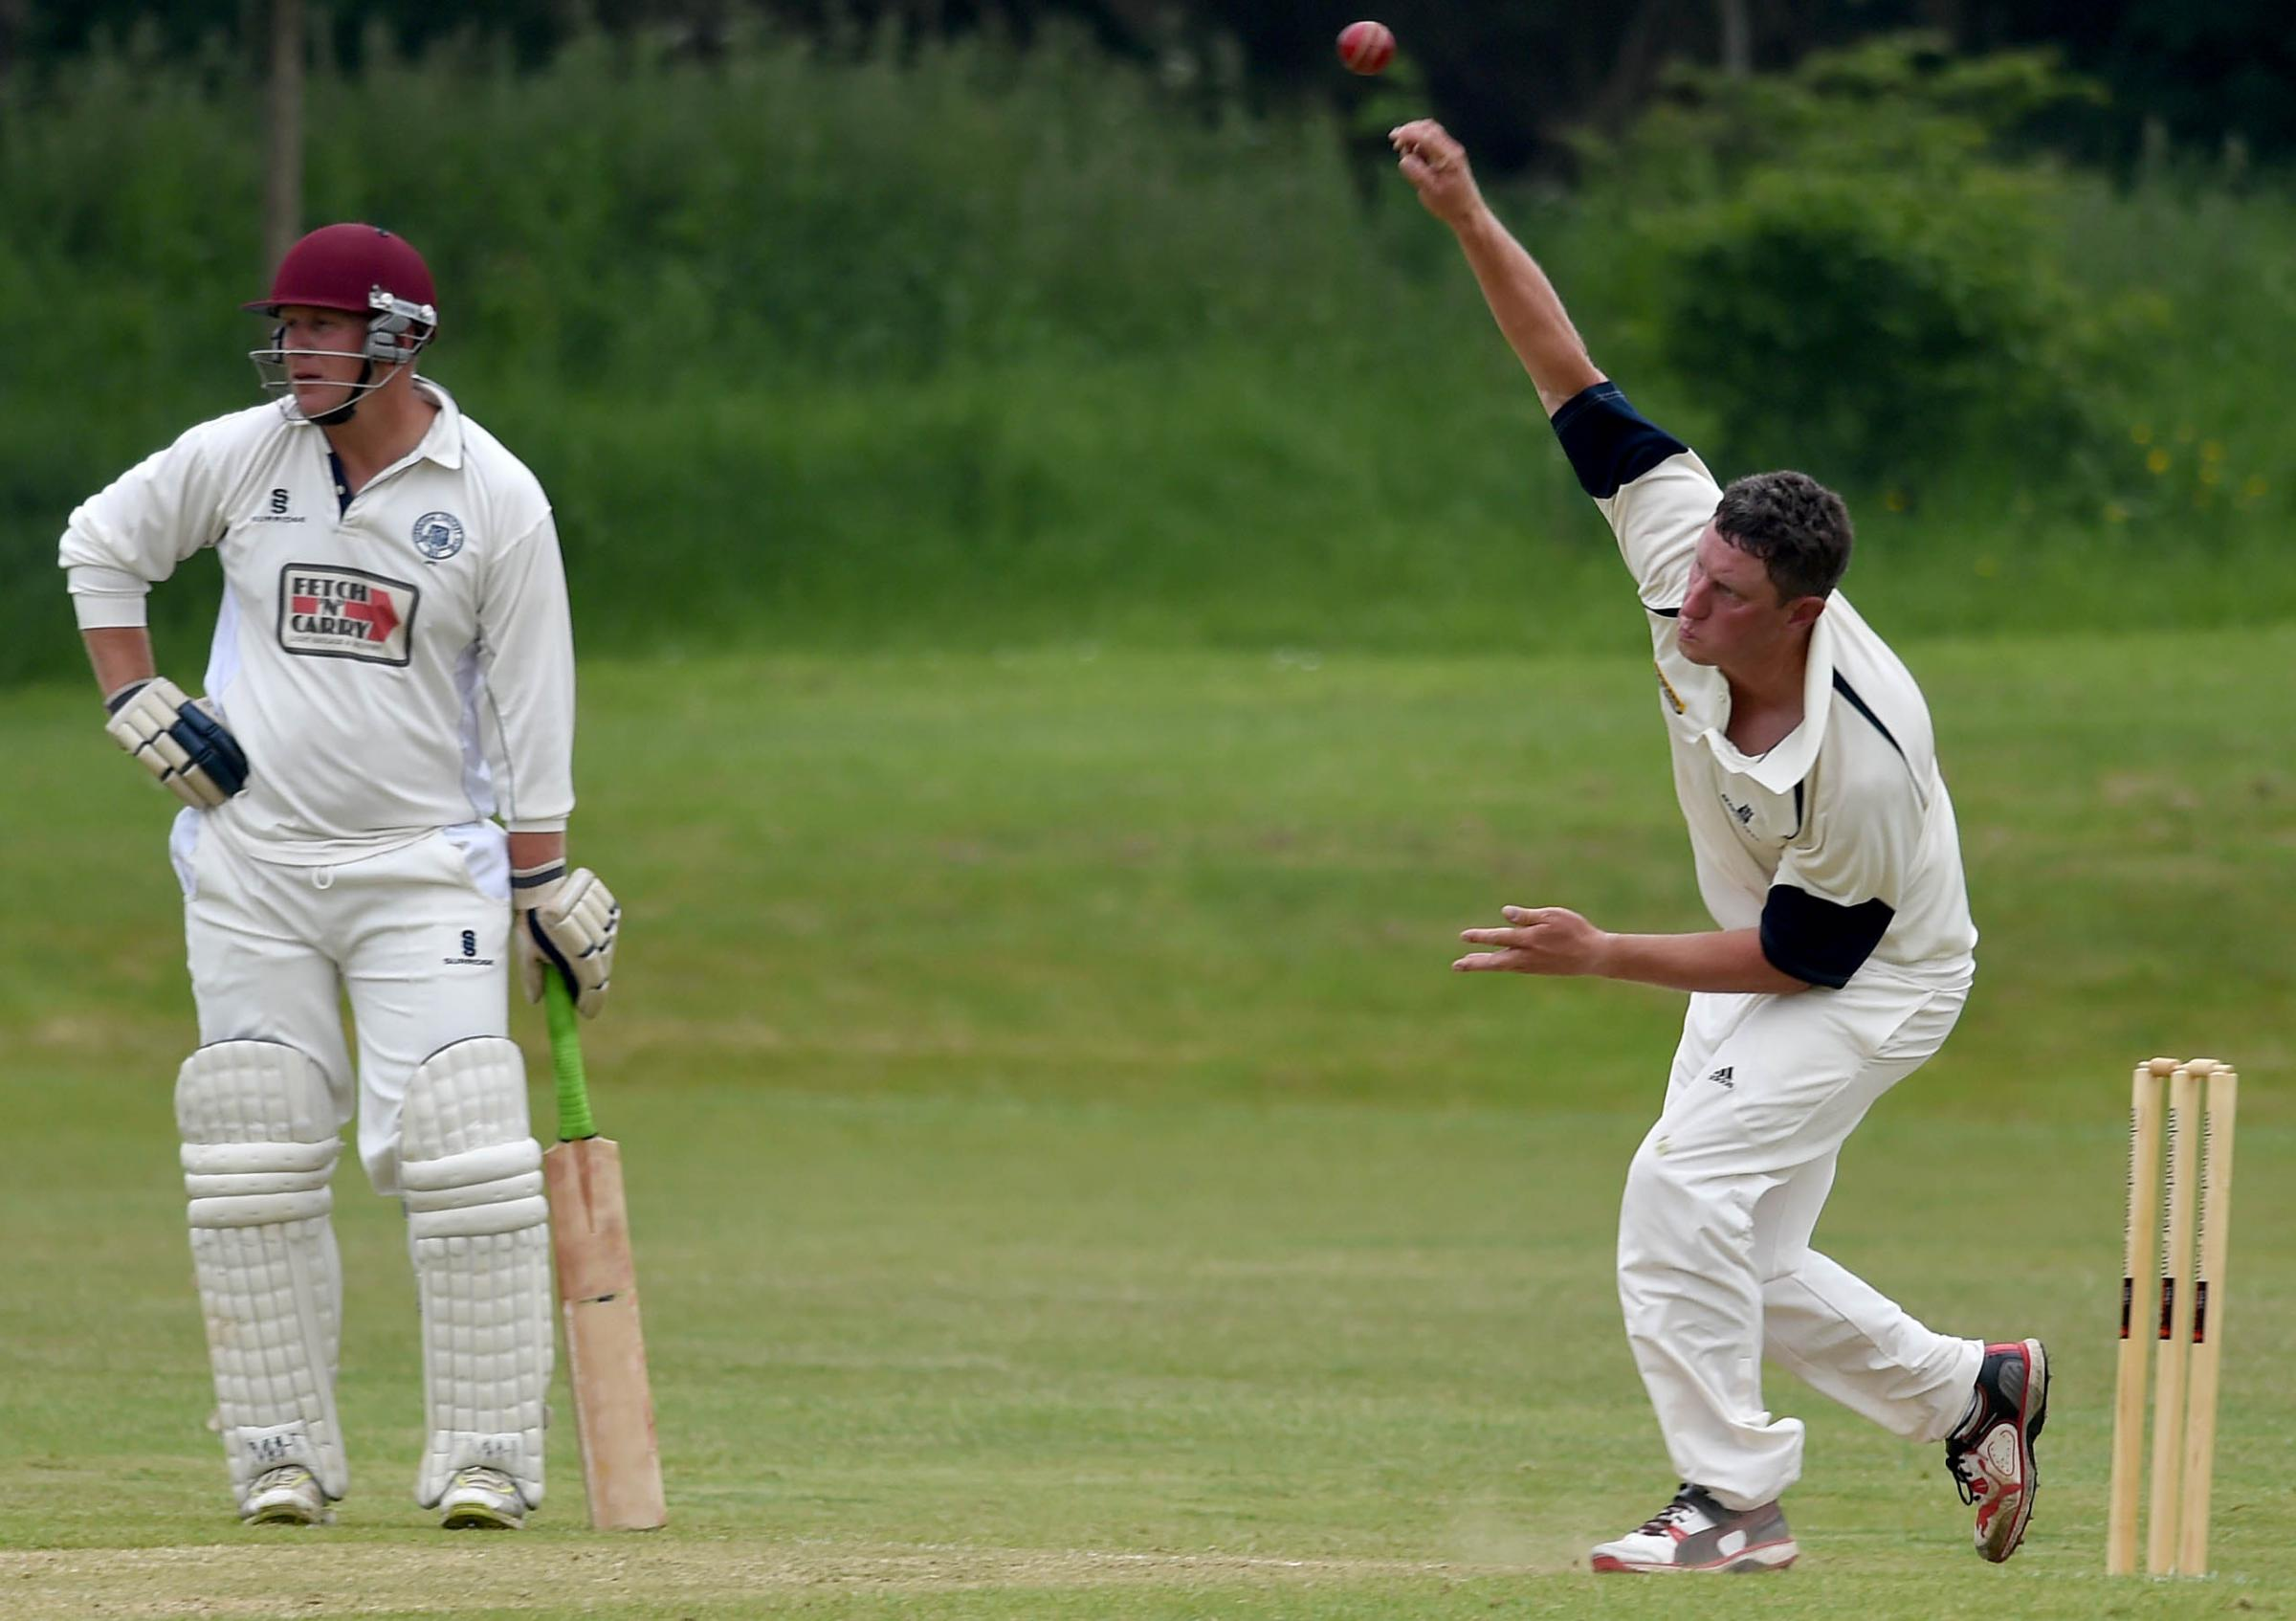 VALIANT EFFORT: Ross Baker bowled economically in Beaminster's loss	    Picture: FINNBARR WEBSTER/F18204